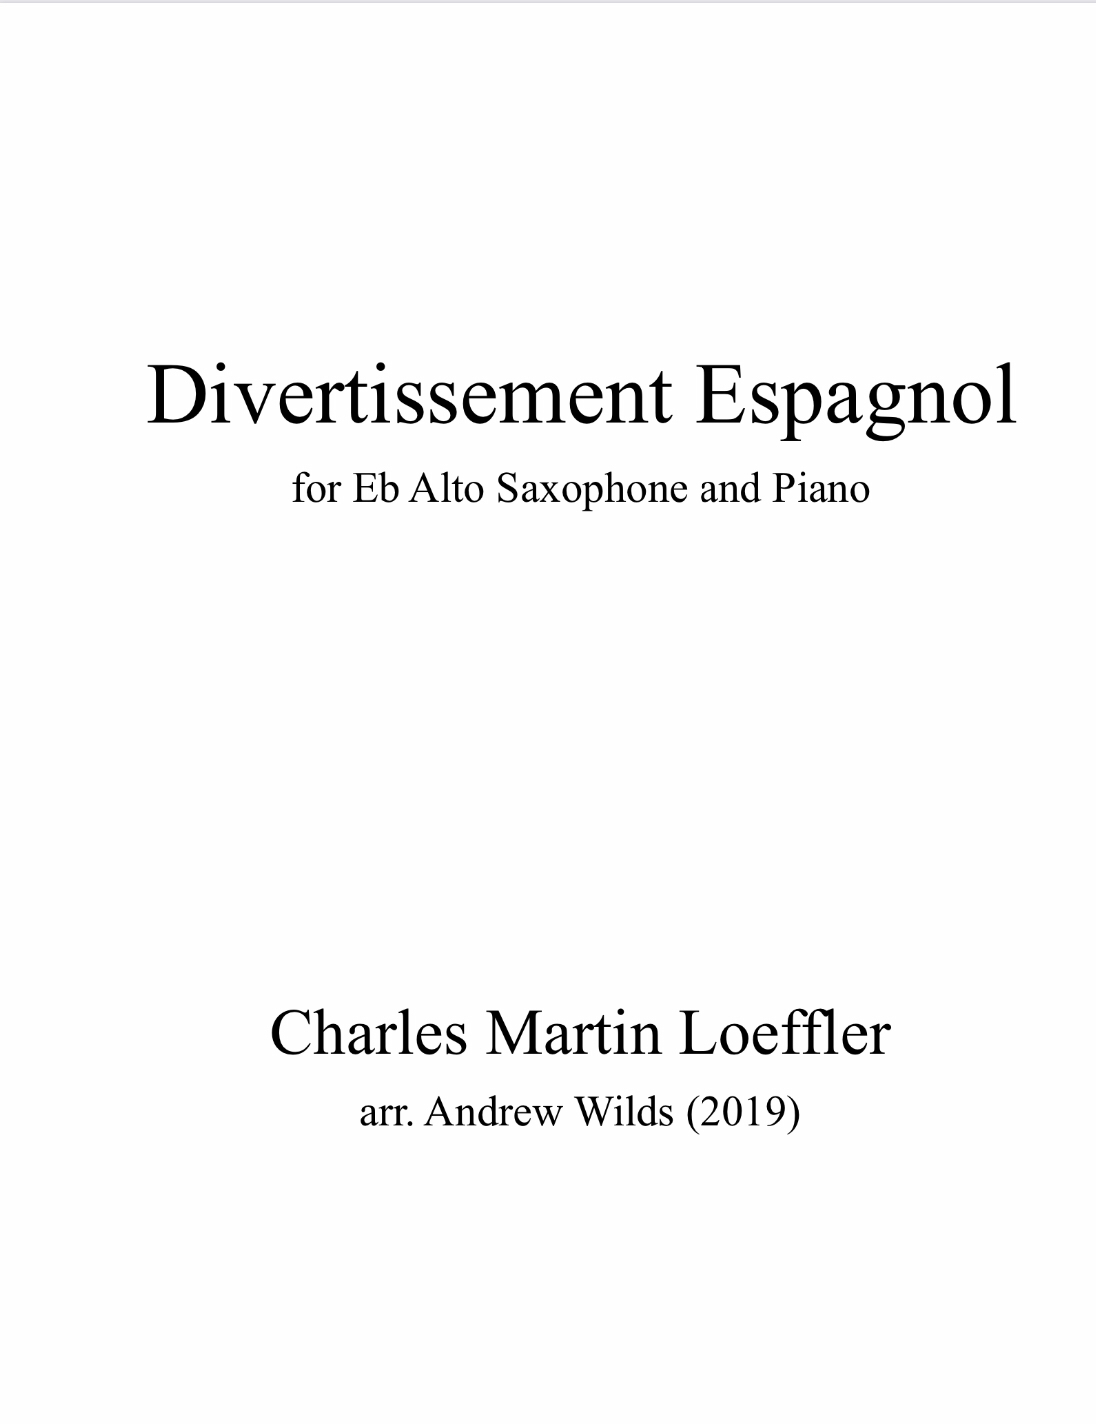 Divertissement Espagnol by arr. Andy Wilds